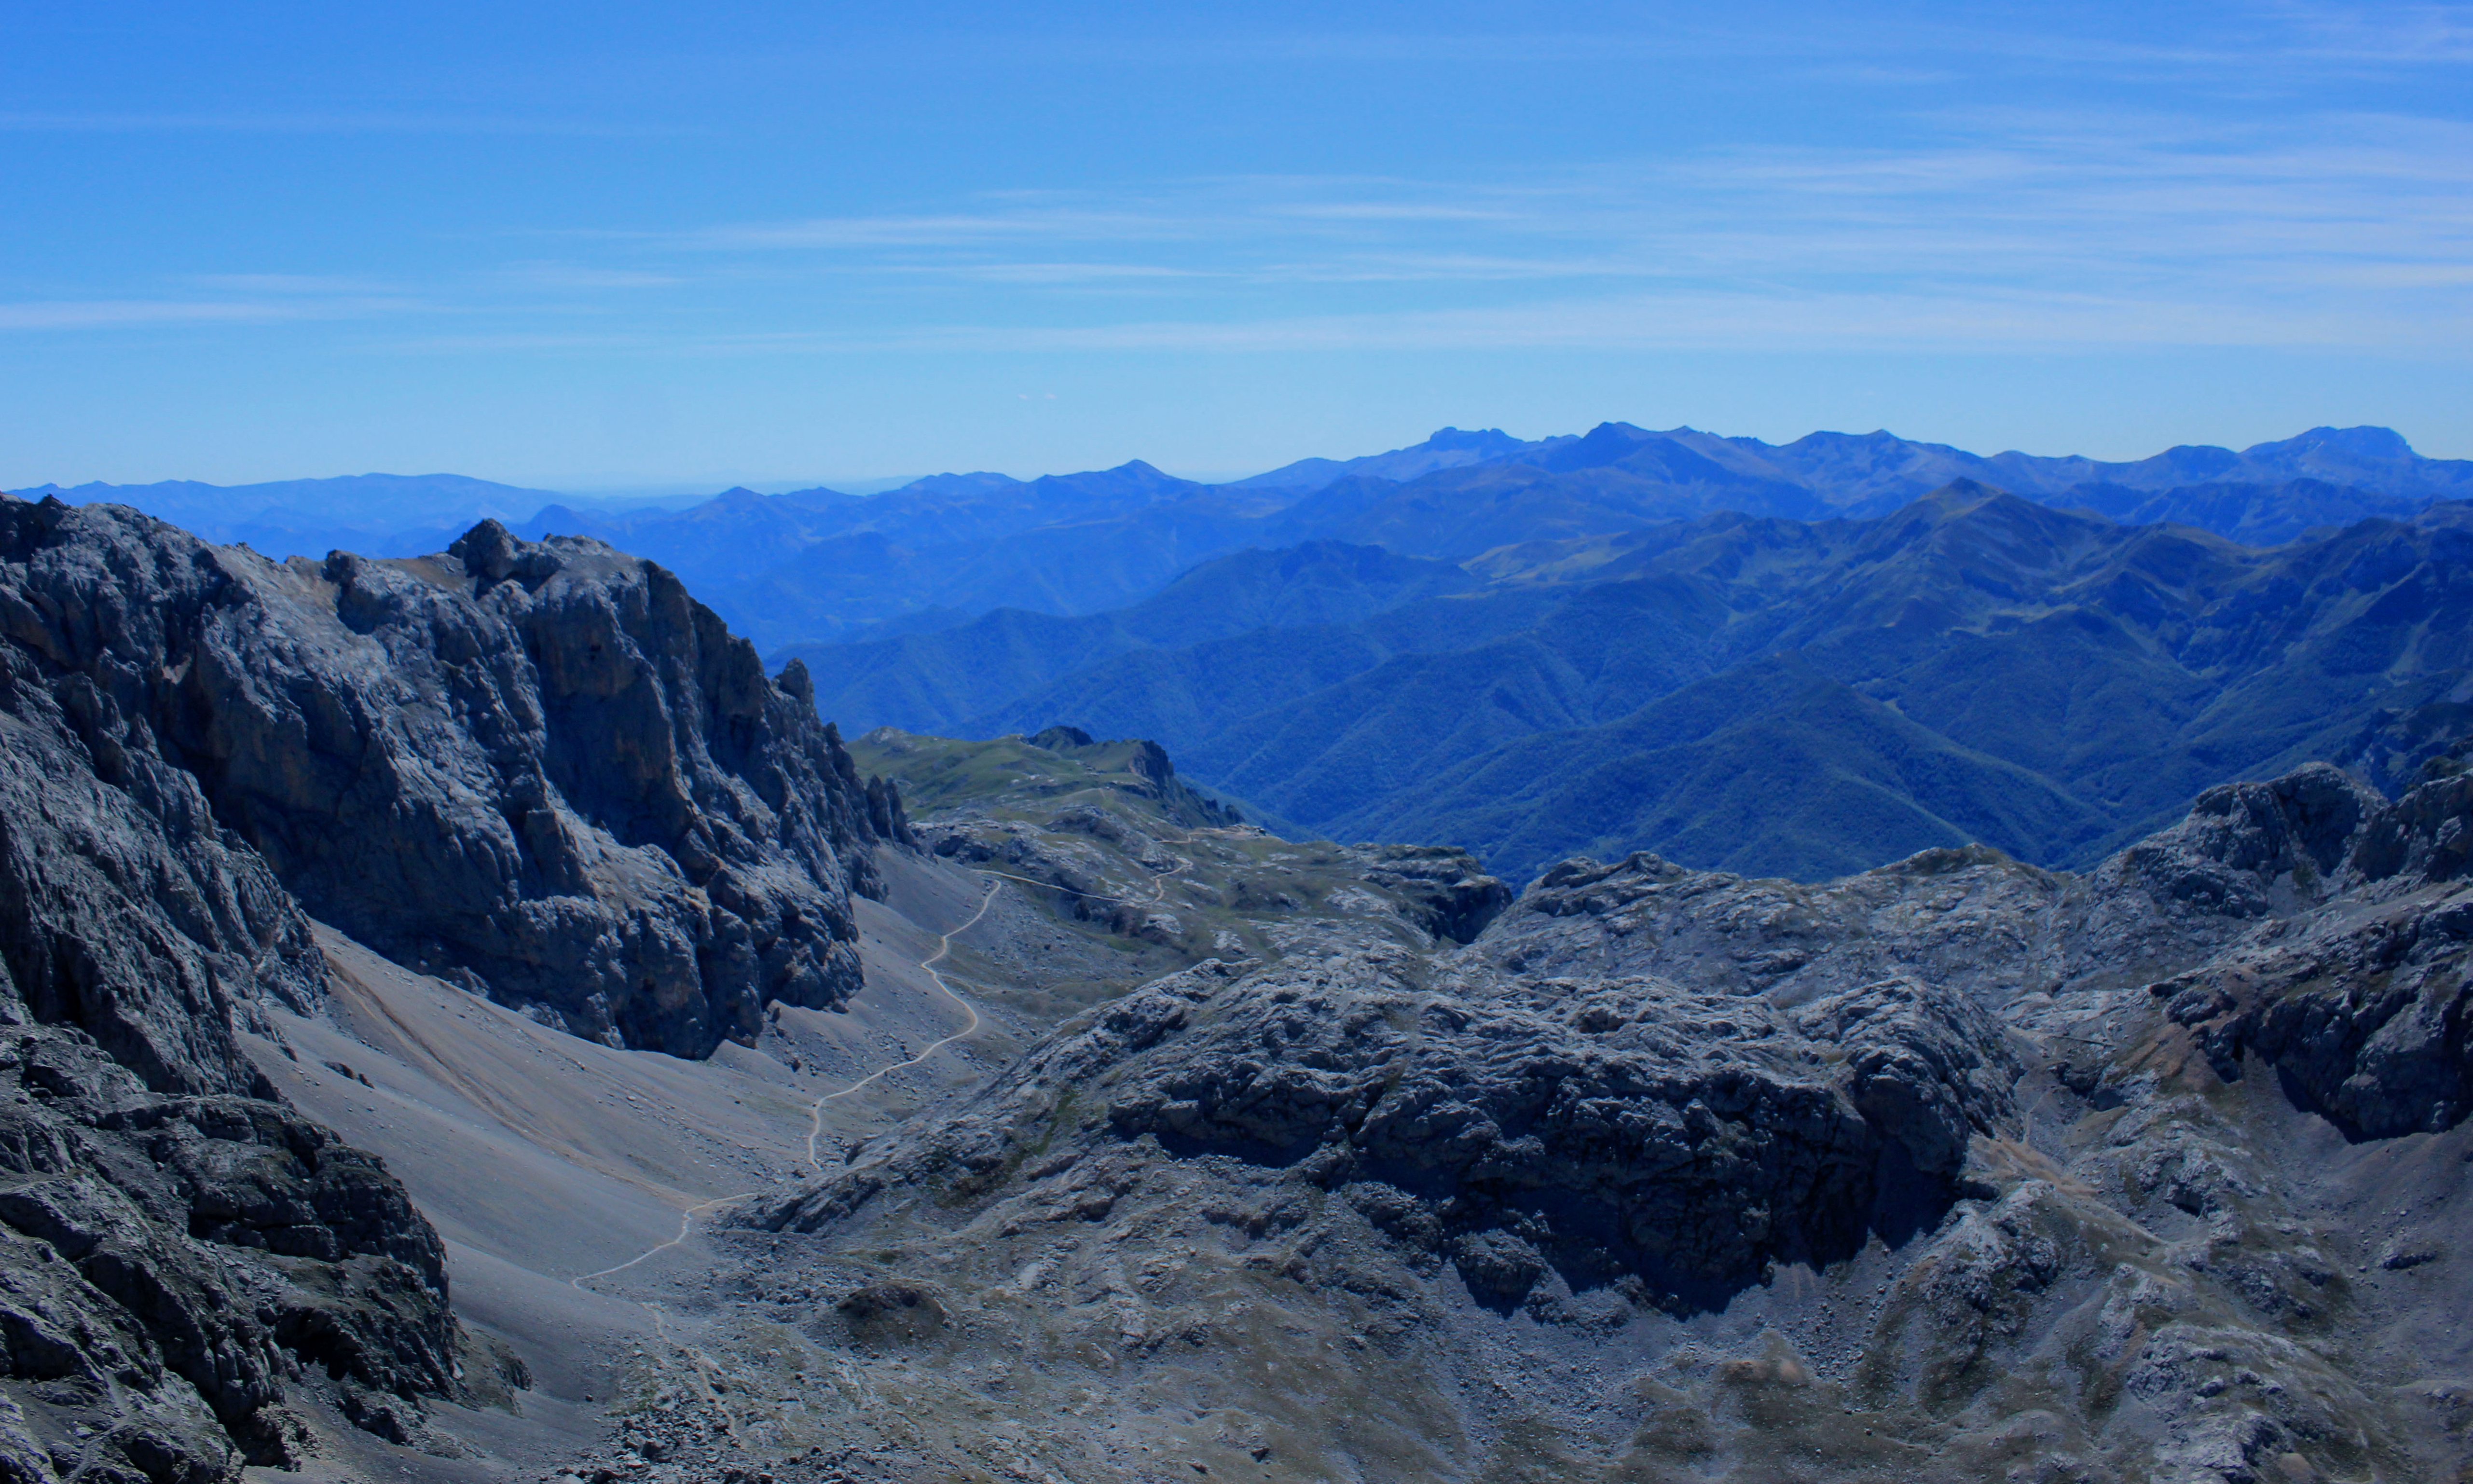 Above the Clouds: Getting my hike on in the Picos de Europa.